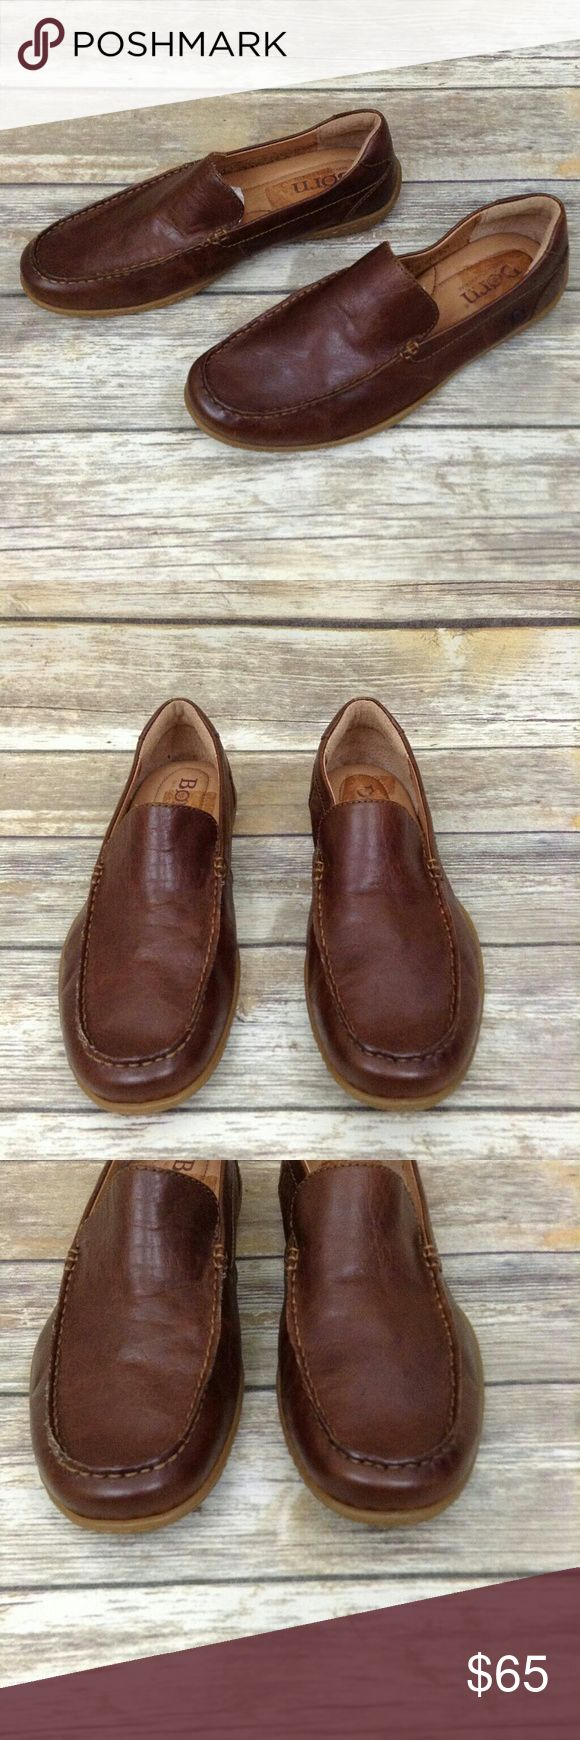 BORN brown leather men's loafer 9.5 Euc. Worn once. Comfort loafer. Inside shows discoloration from price tag see pics. Backup of one shoe has a 2 tiny dings see pic. Leather upper & lining balance man made mterial. Born Shoes Loafers & Slip-Ons